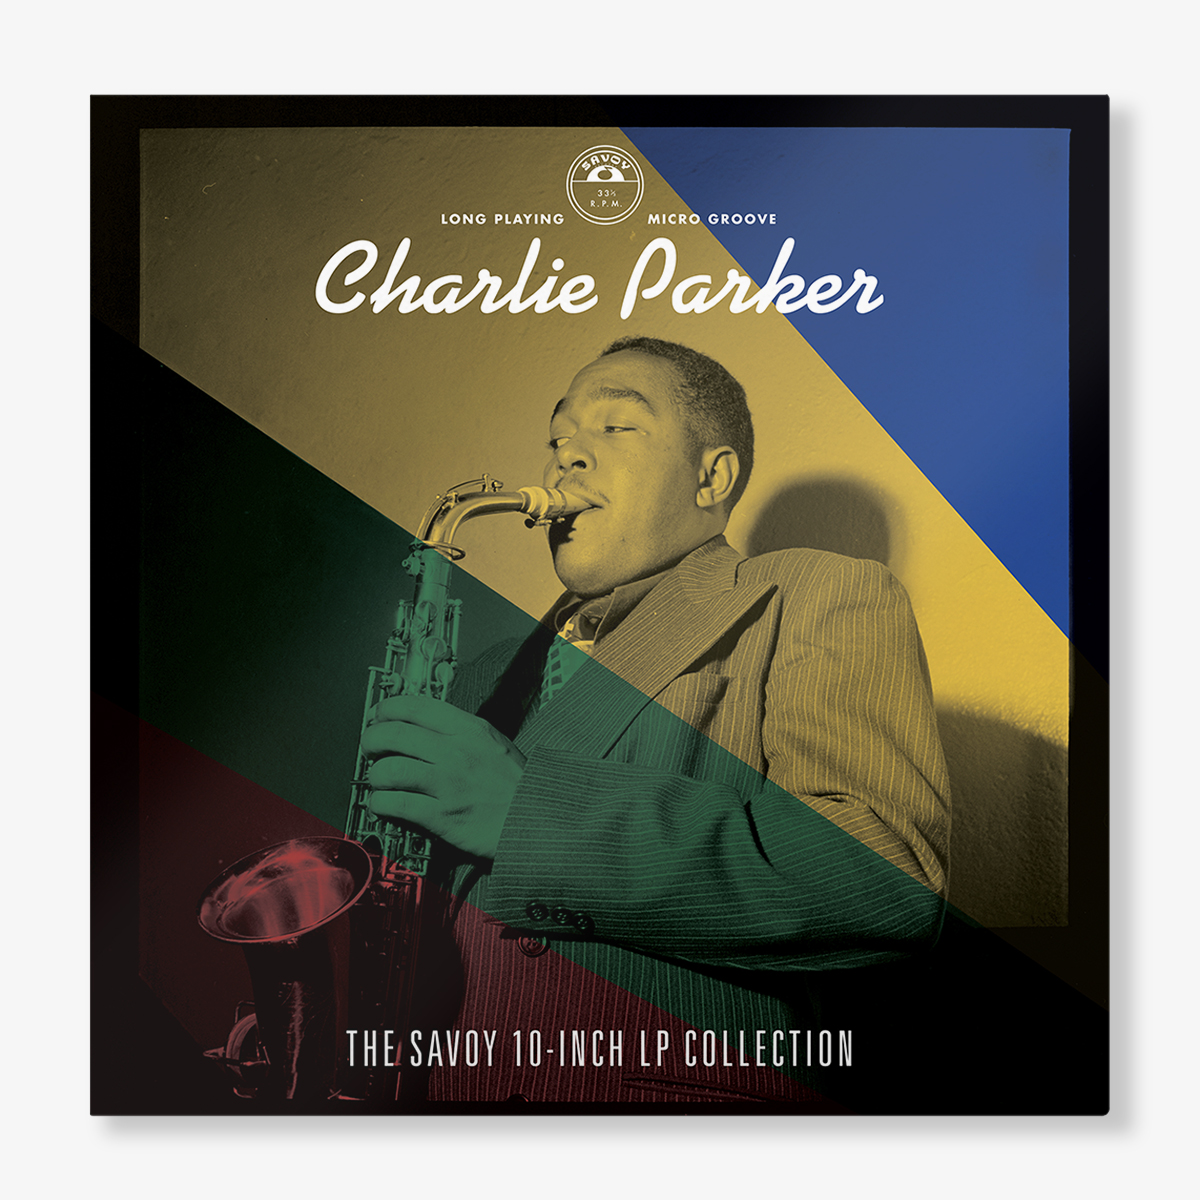 Charlie Parker - Savoy 10-Inch Lp Collection (Hqcd) (Jpn)